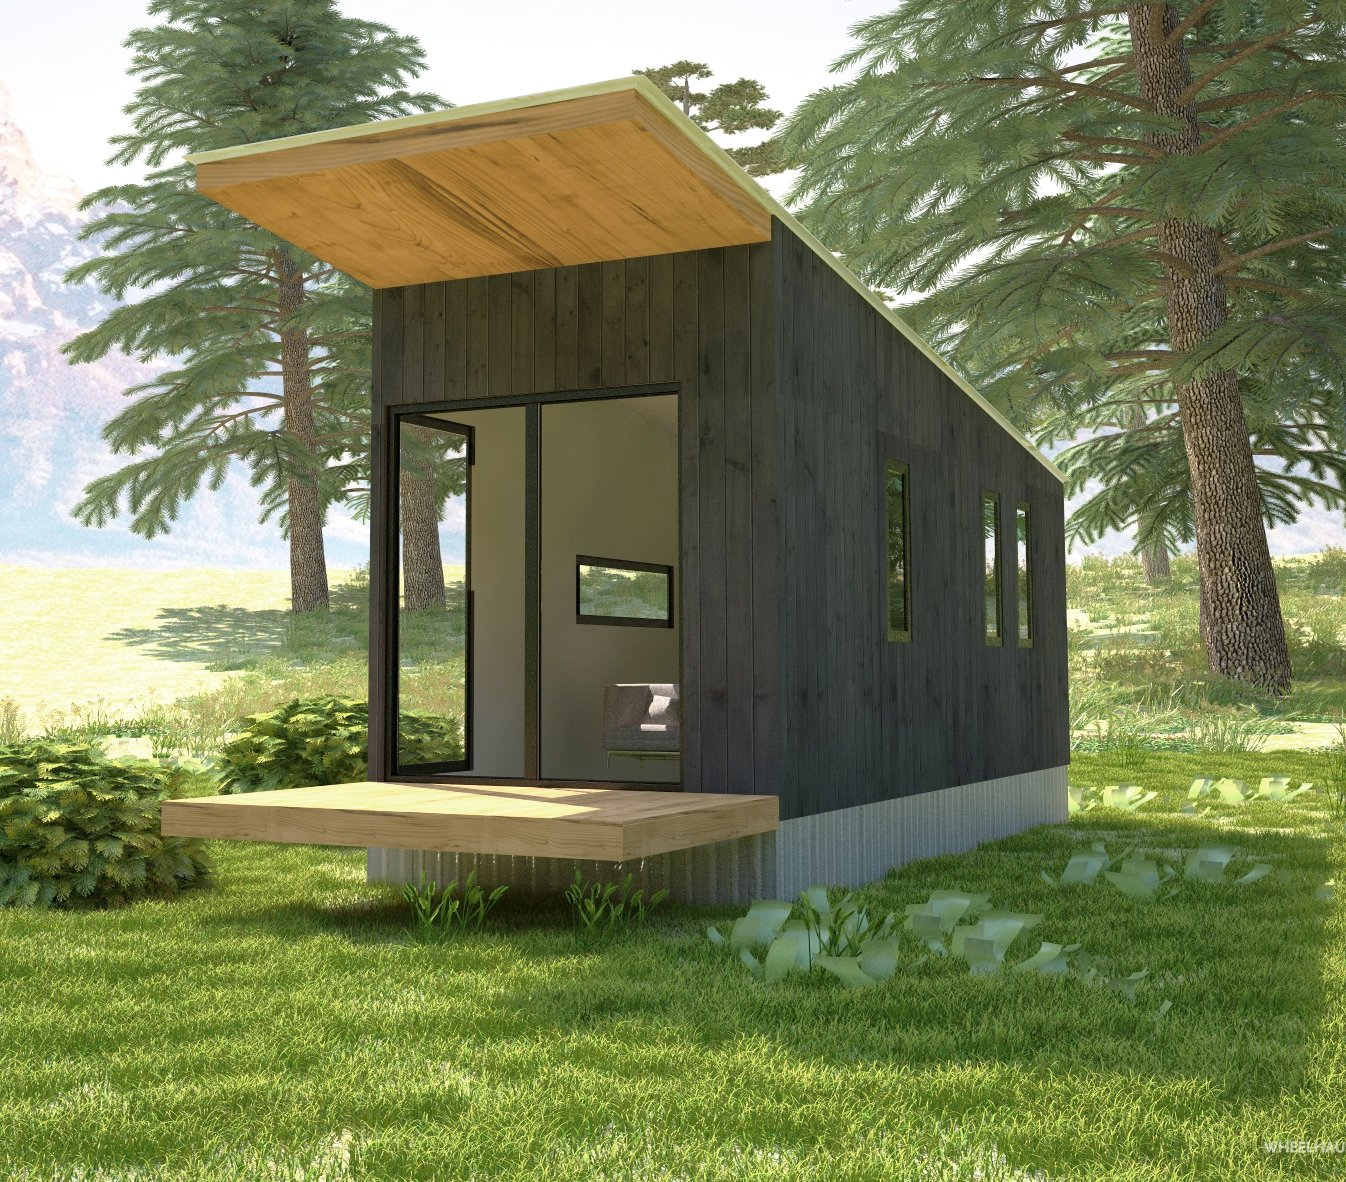 Find Rent Houses: 10 Tiny Houses You Can Rent (or Even Buy